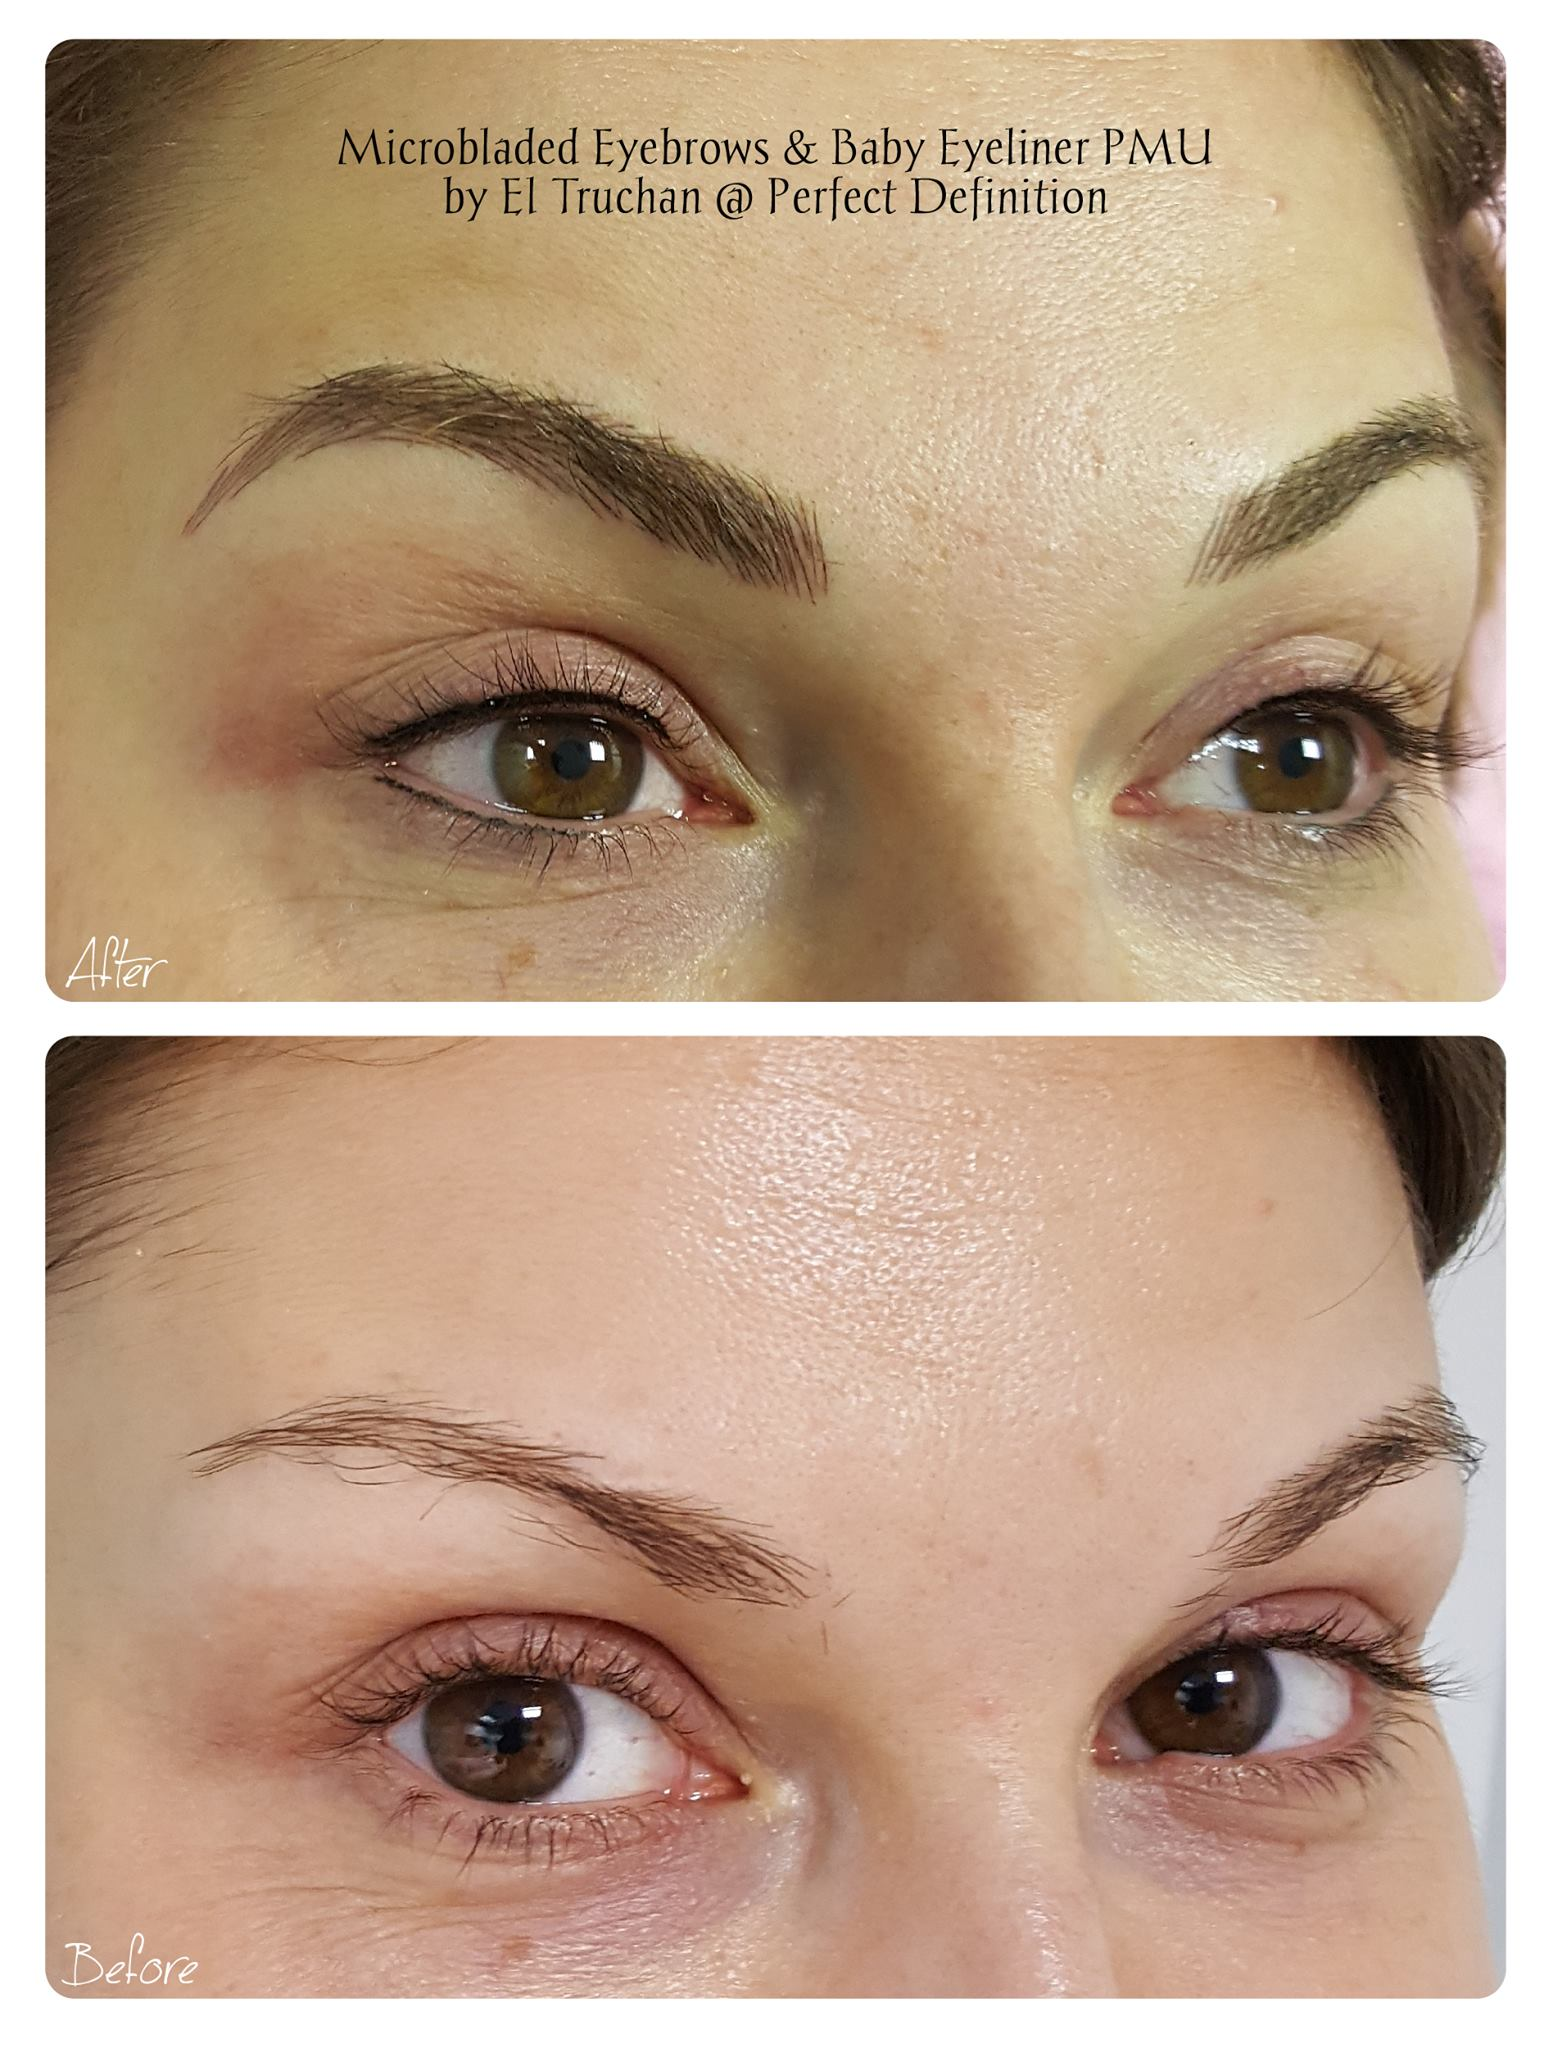 Microbladed Eyebrows & Baby Eyeliner PMU